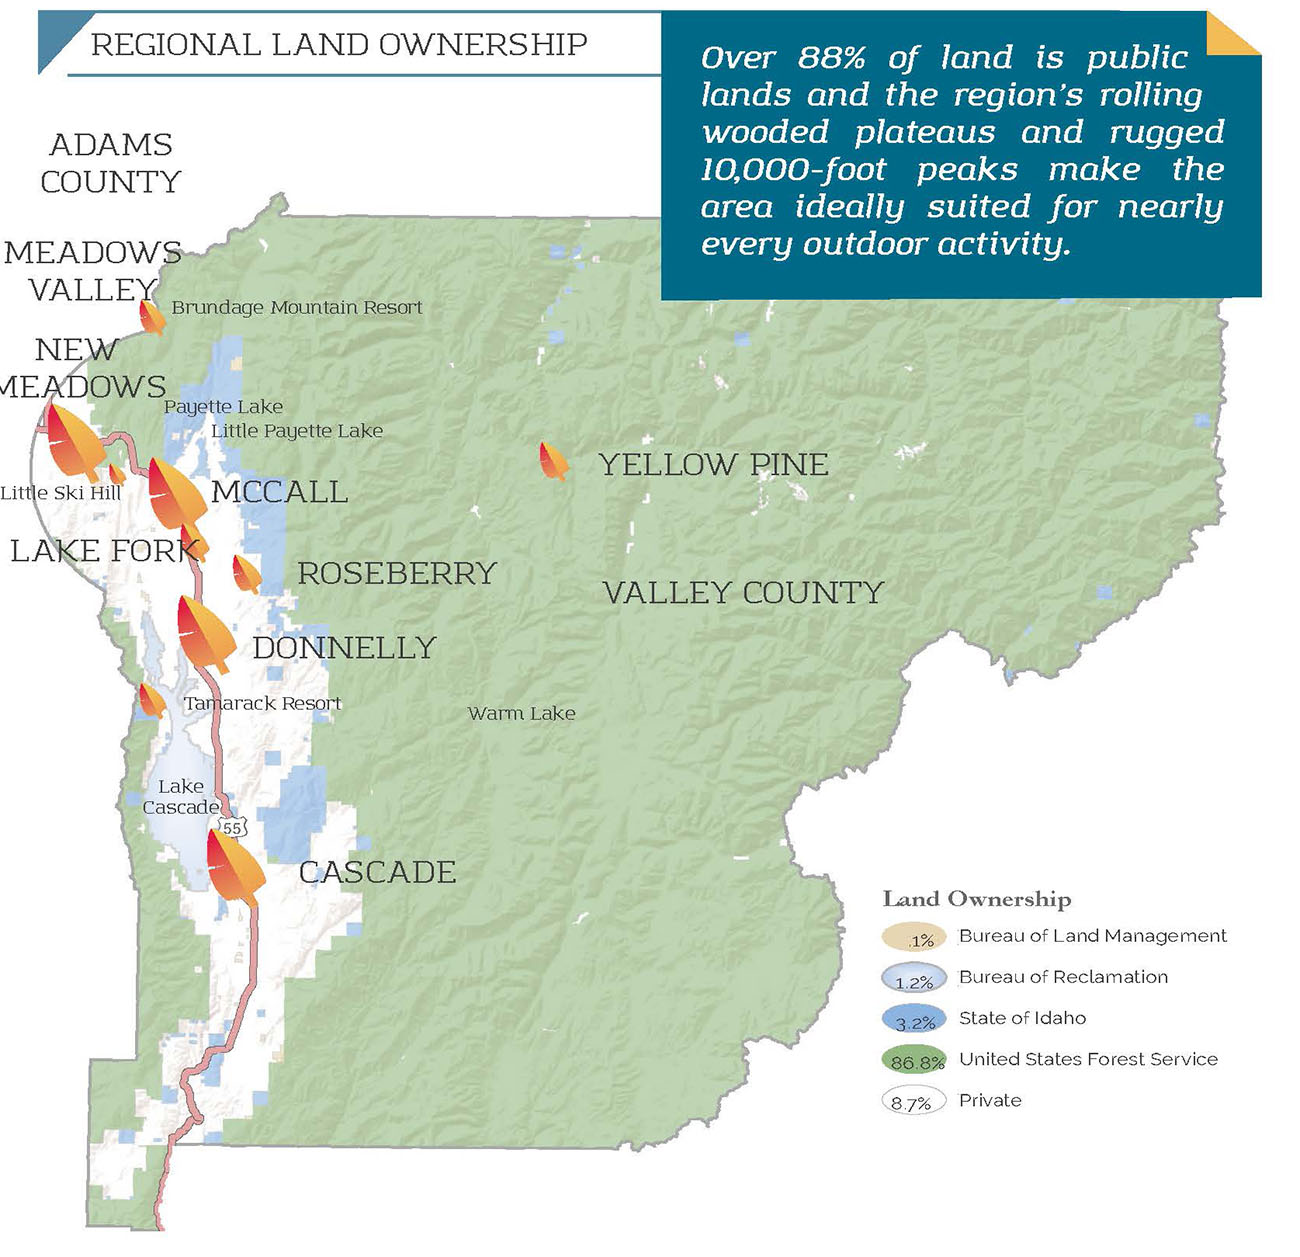 Map of West Central Mountains Region land ownership